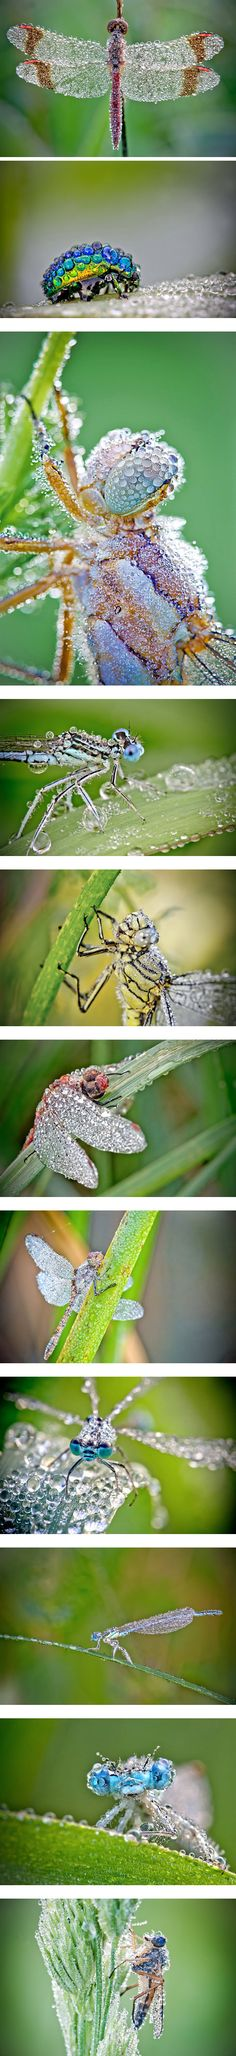 Dew-Covered Macro Insect Photography by David Chambon